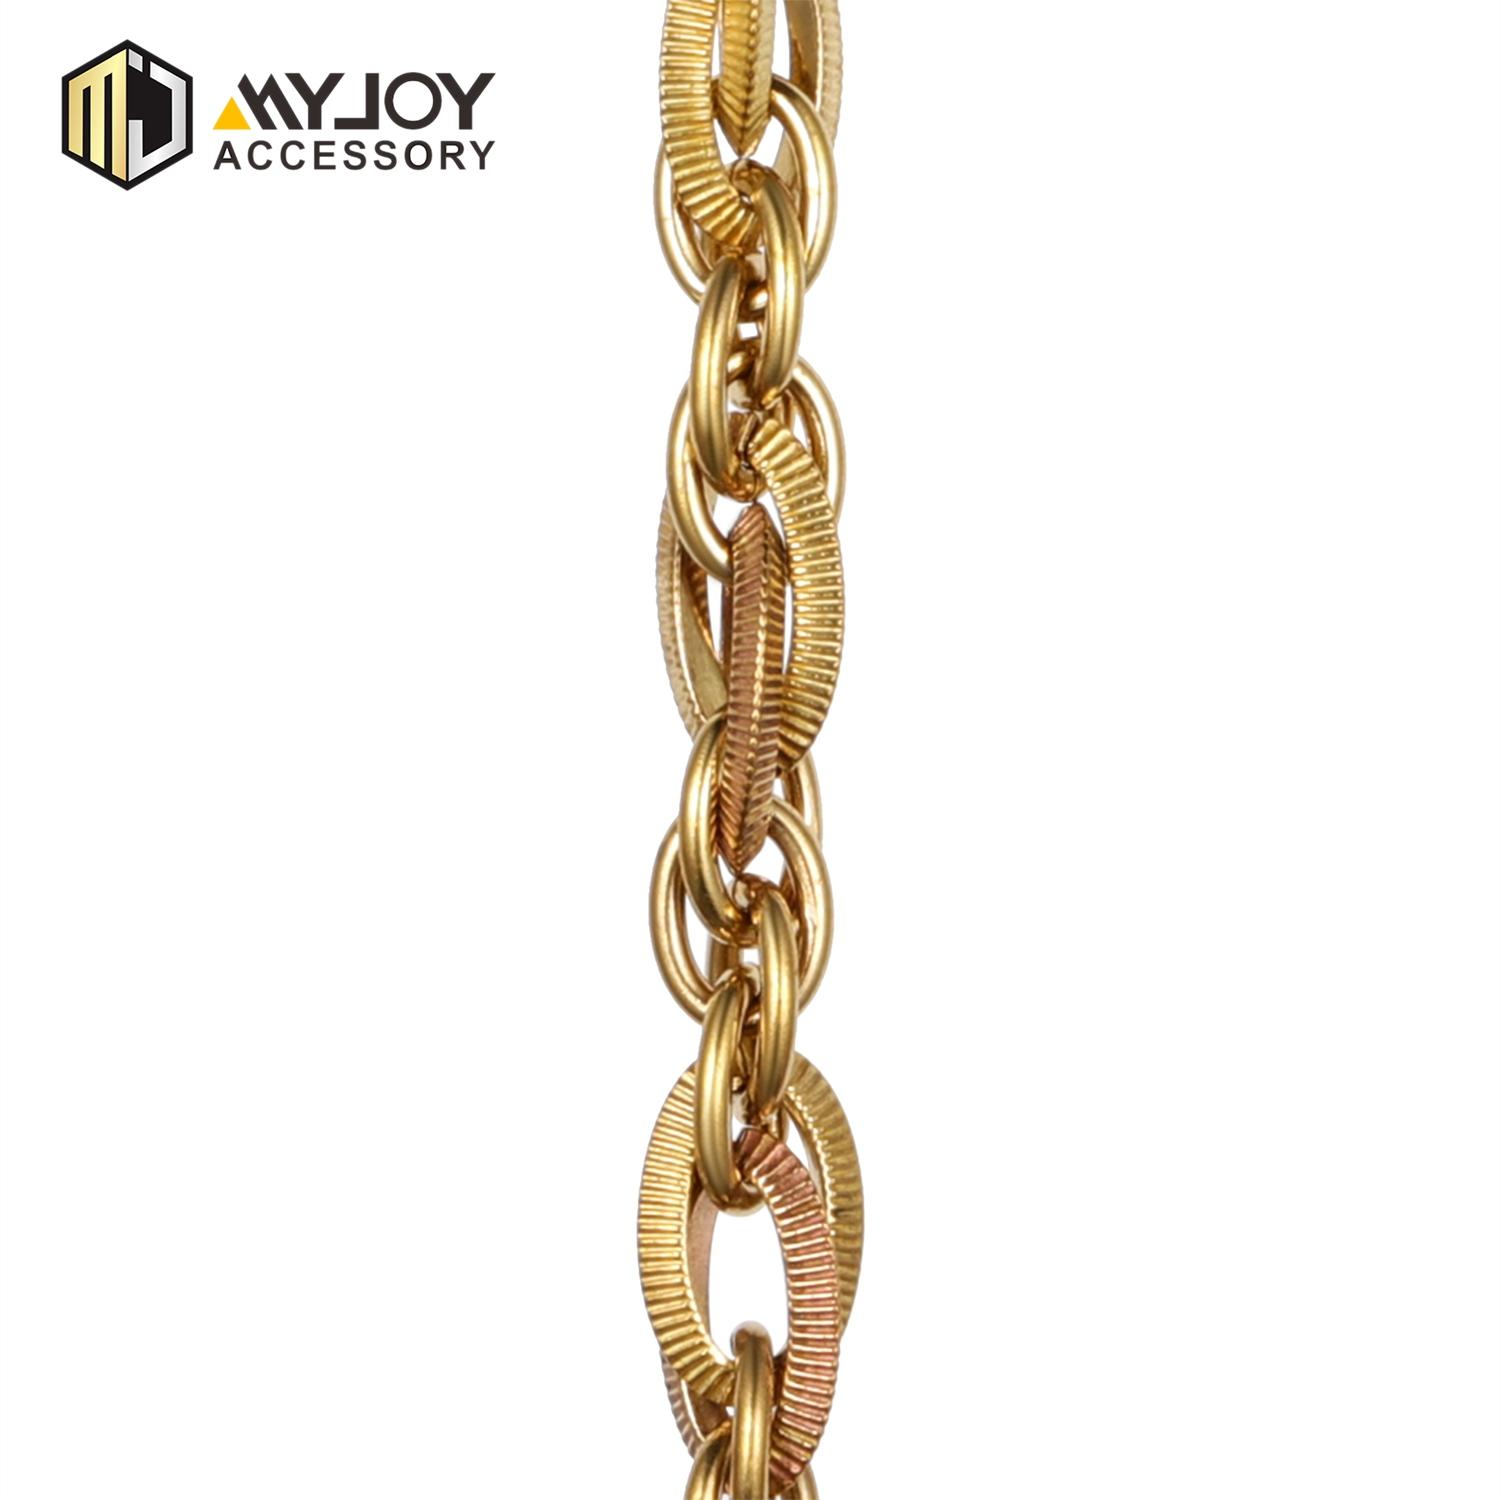 MYJOY Best handbag chain strap factory for bags-2